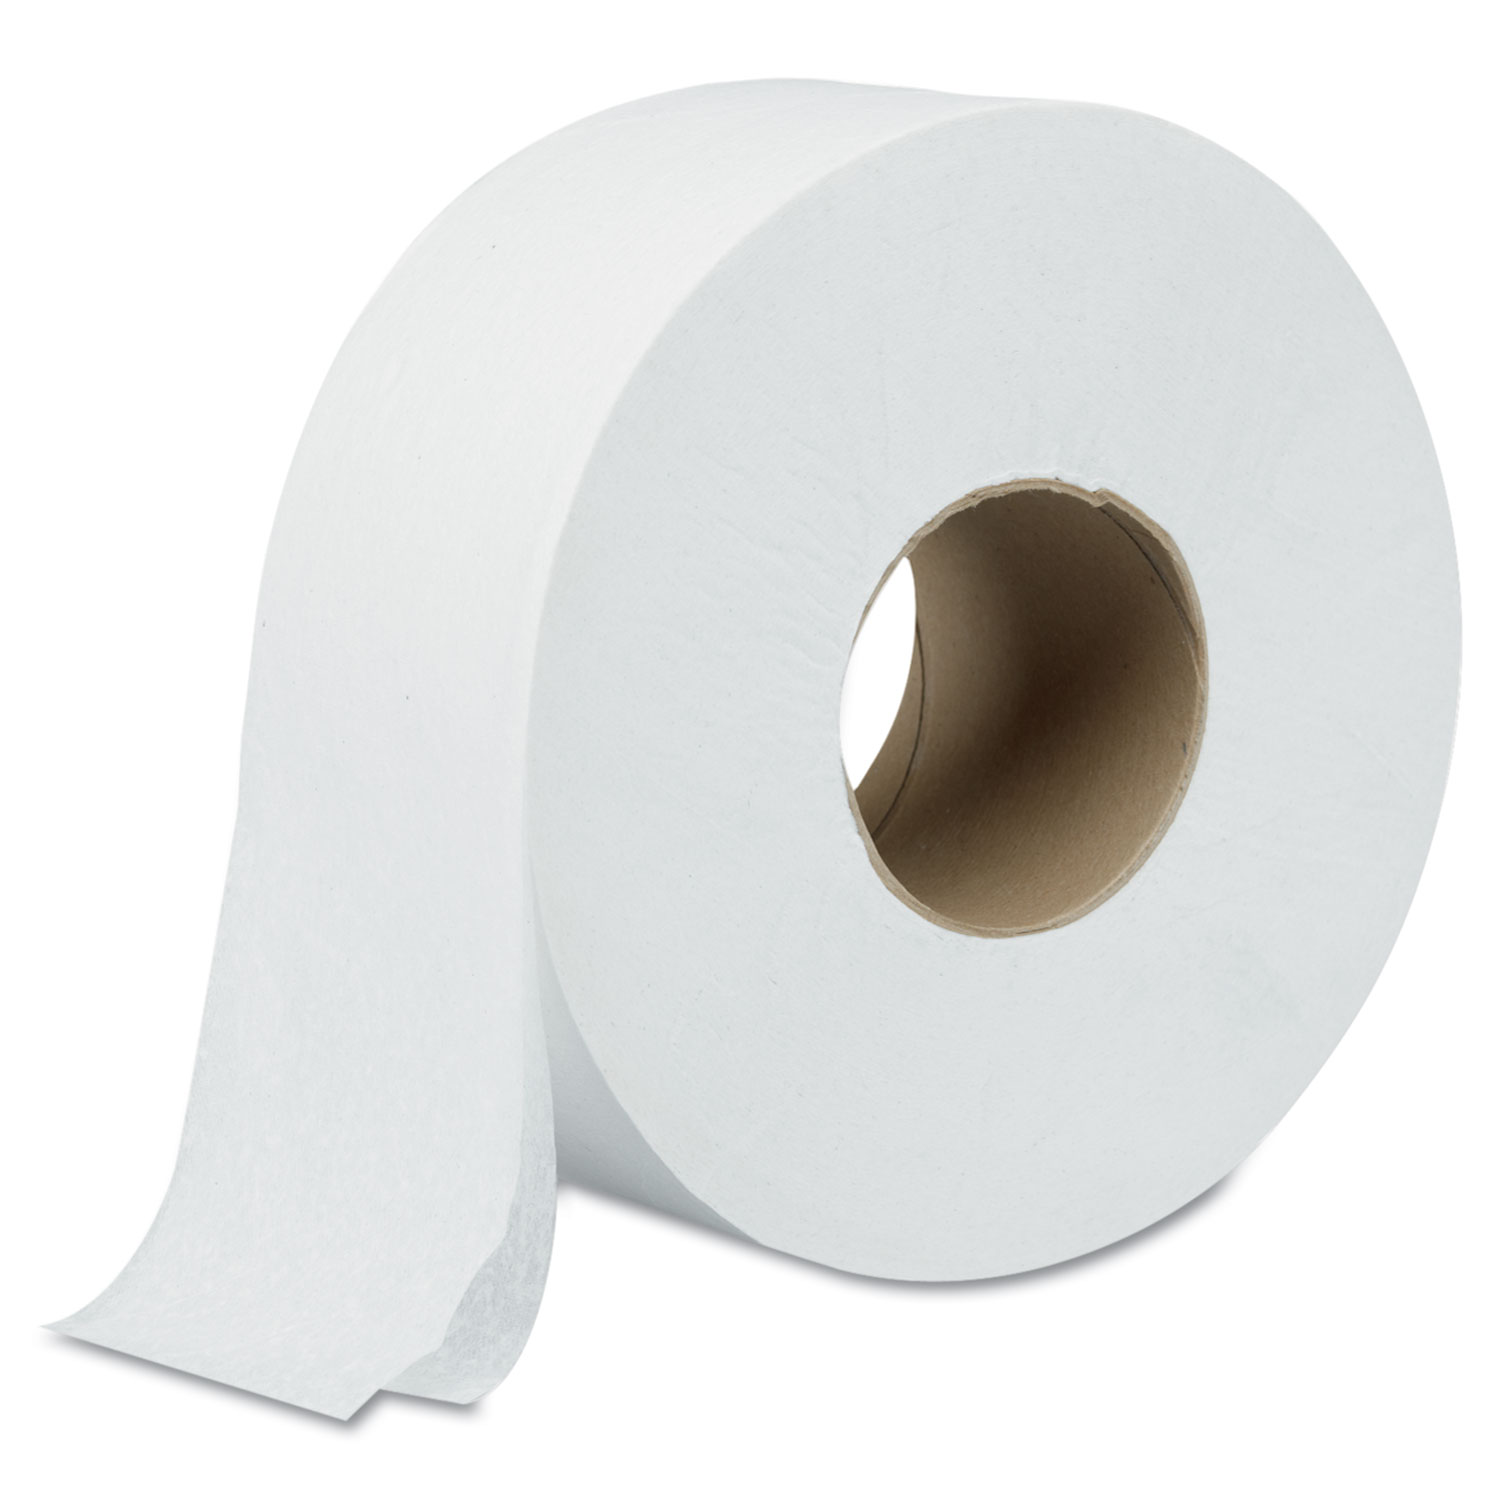 See The Green Heritage Jumbo Roll Bathroom Tissue And Other Toilet Tissues